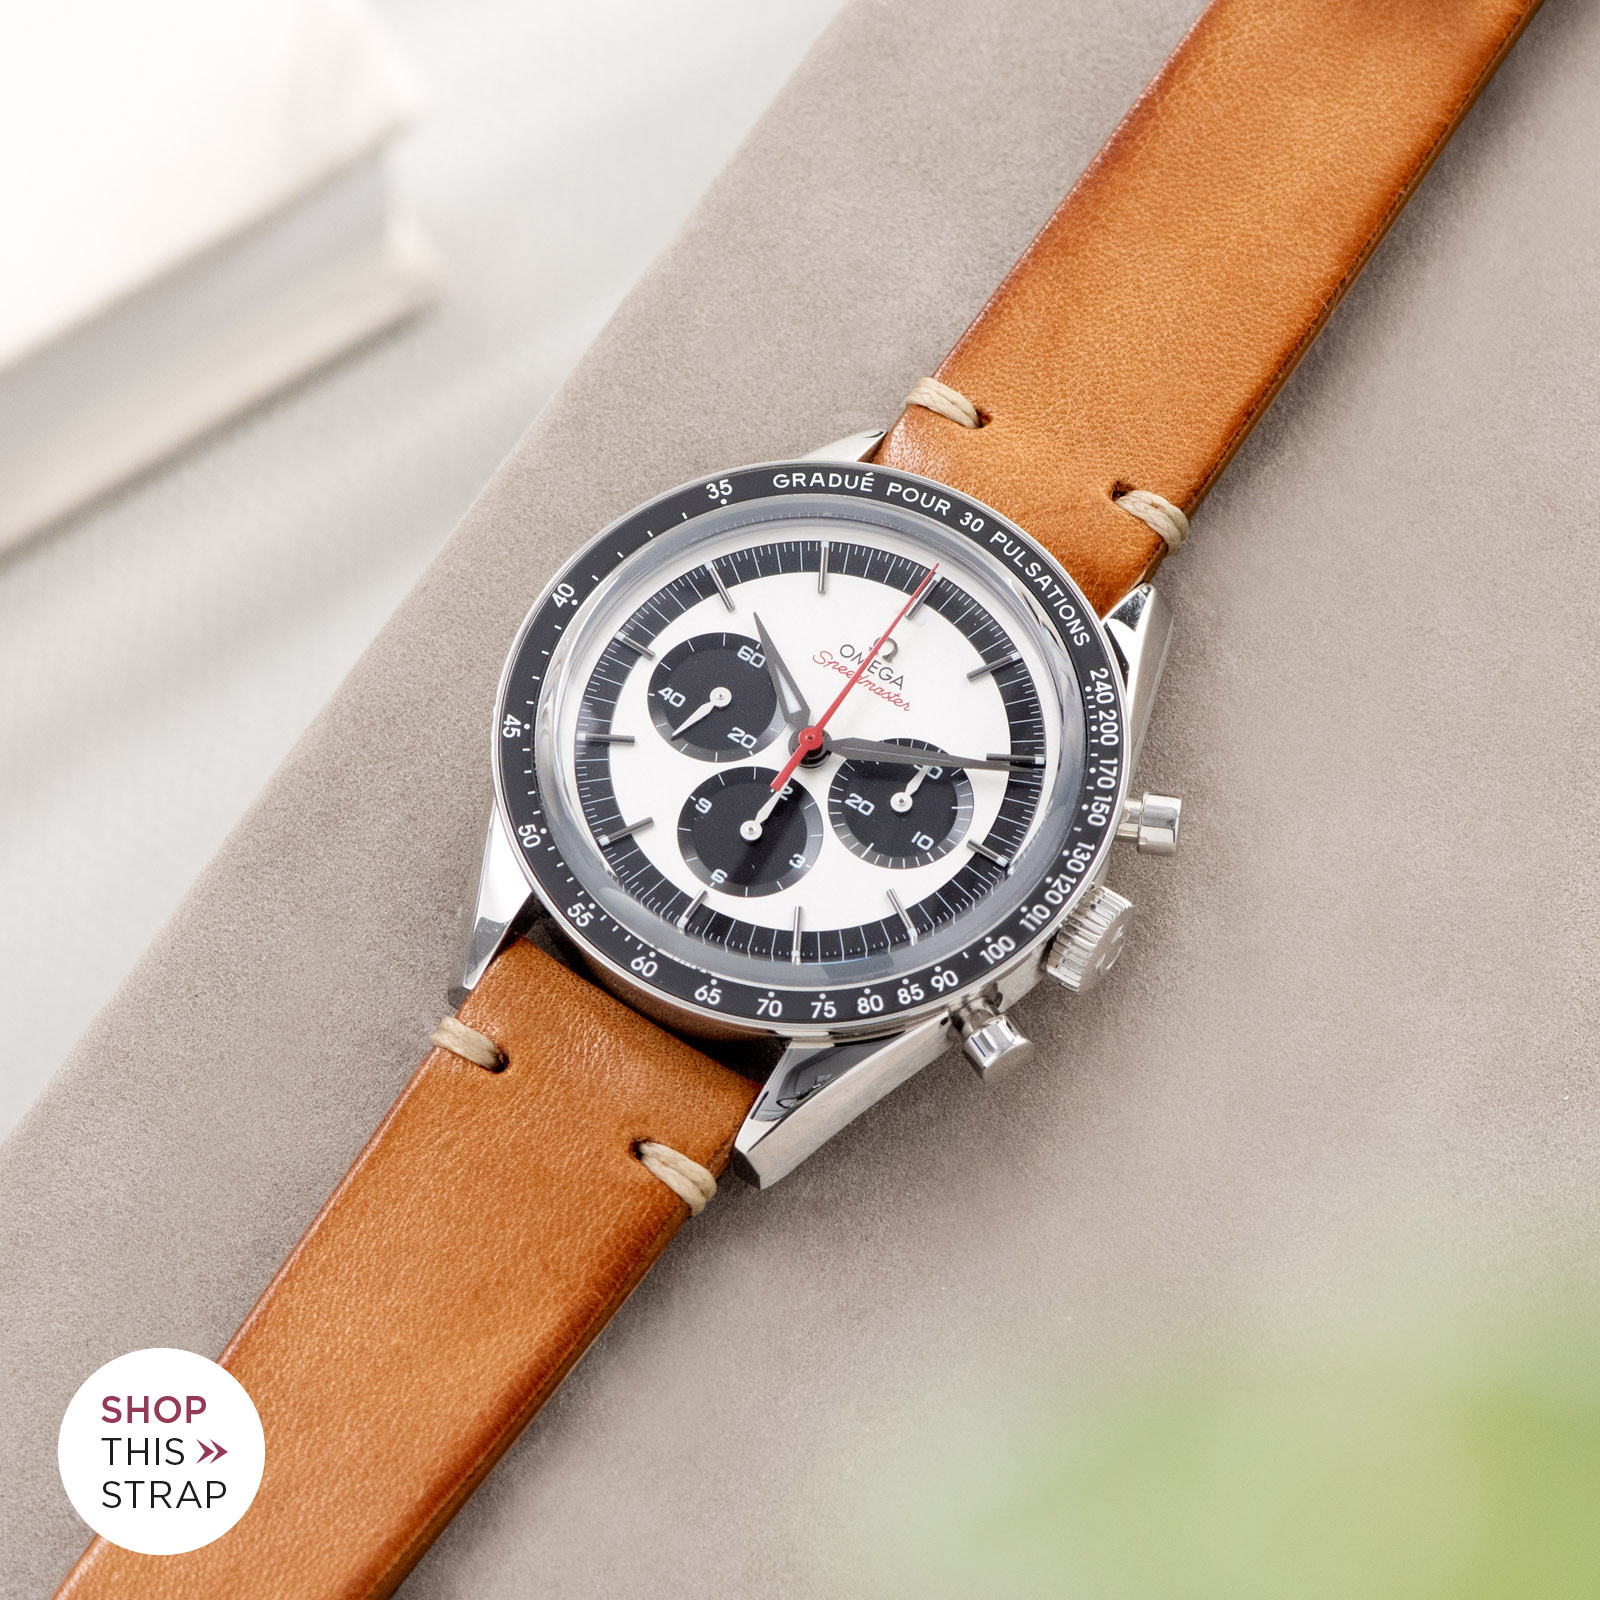 Bulang and Sons_Strap Guide_Omega Speedmaster 2998_Caramel Brown Leather Watch Strap